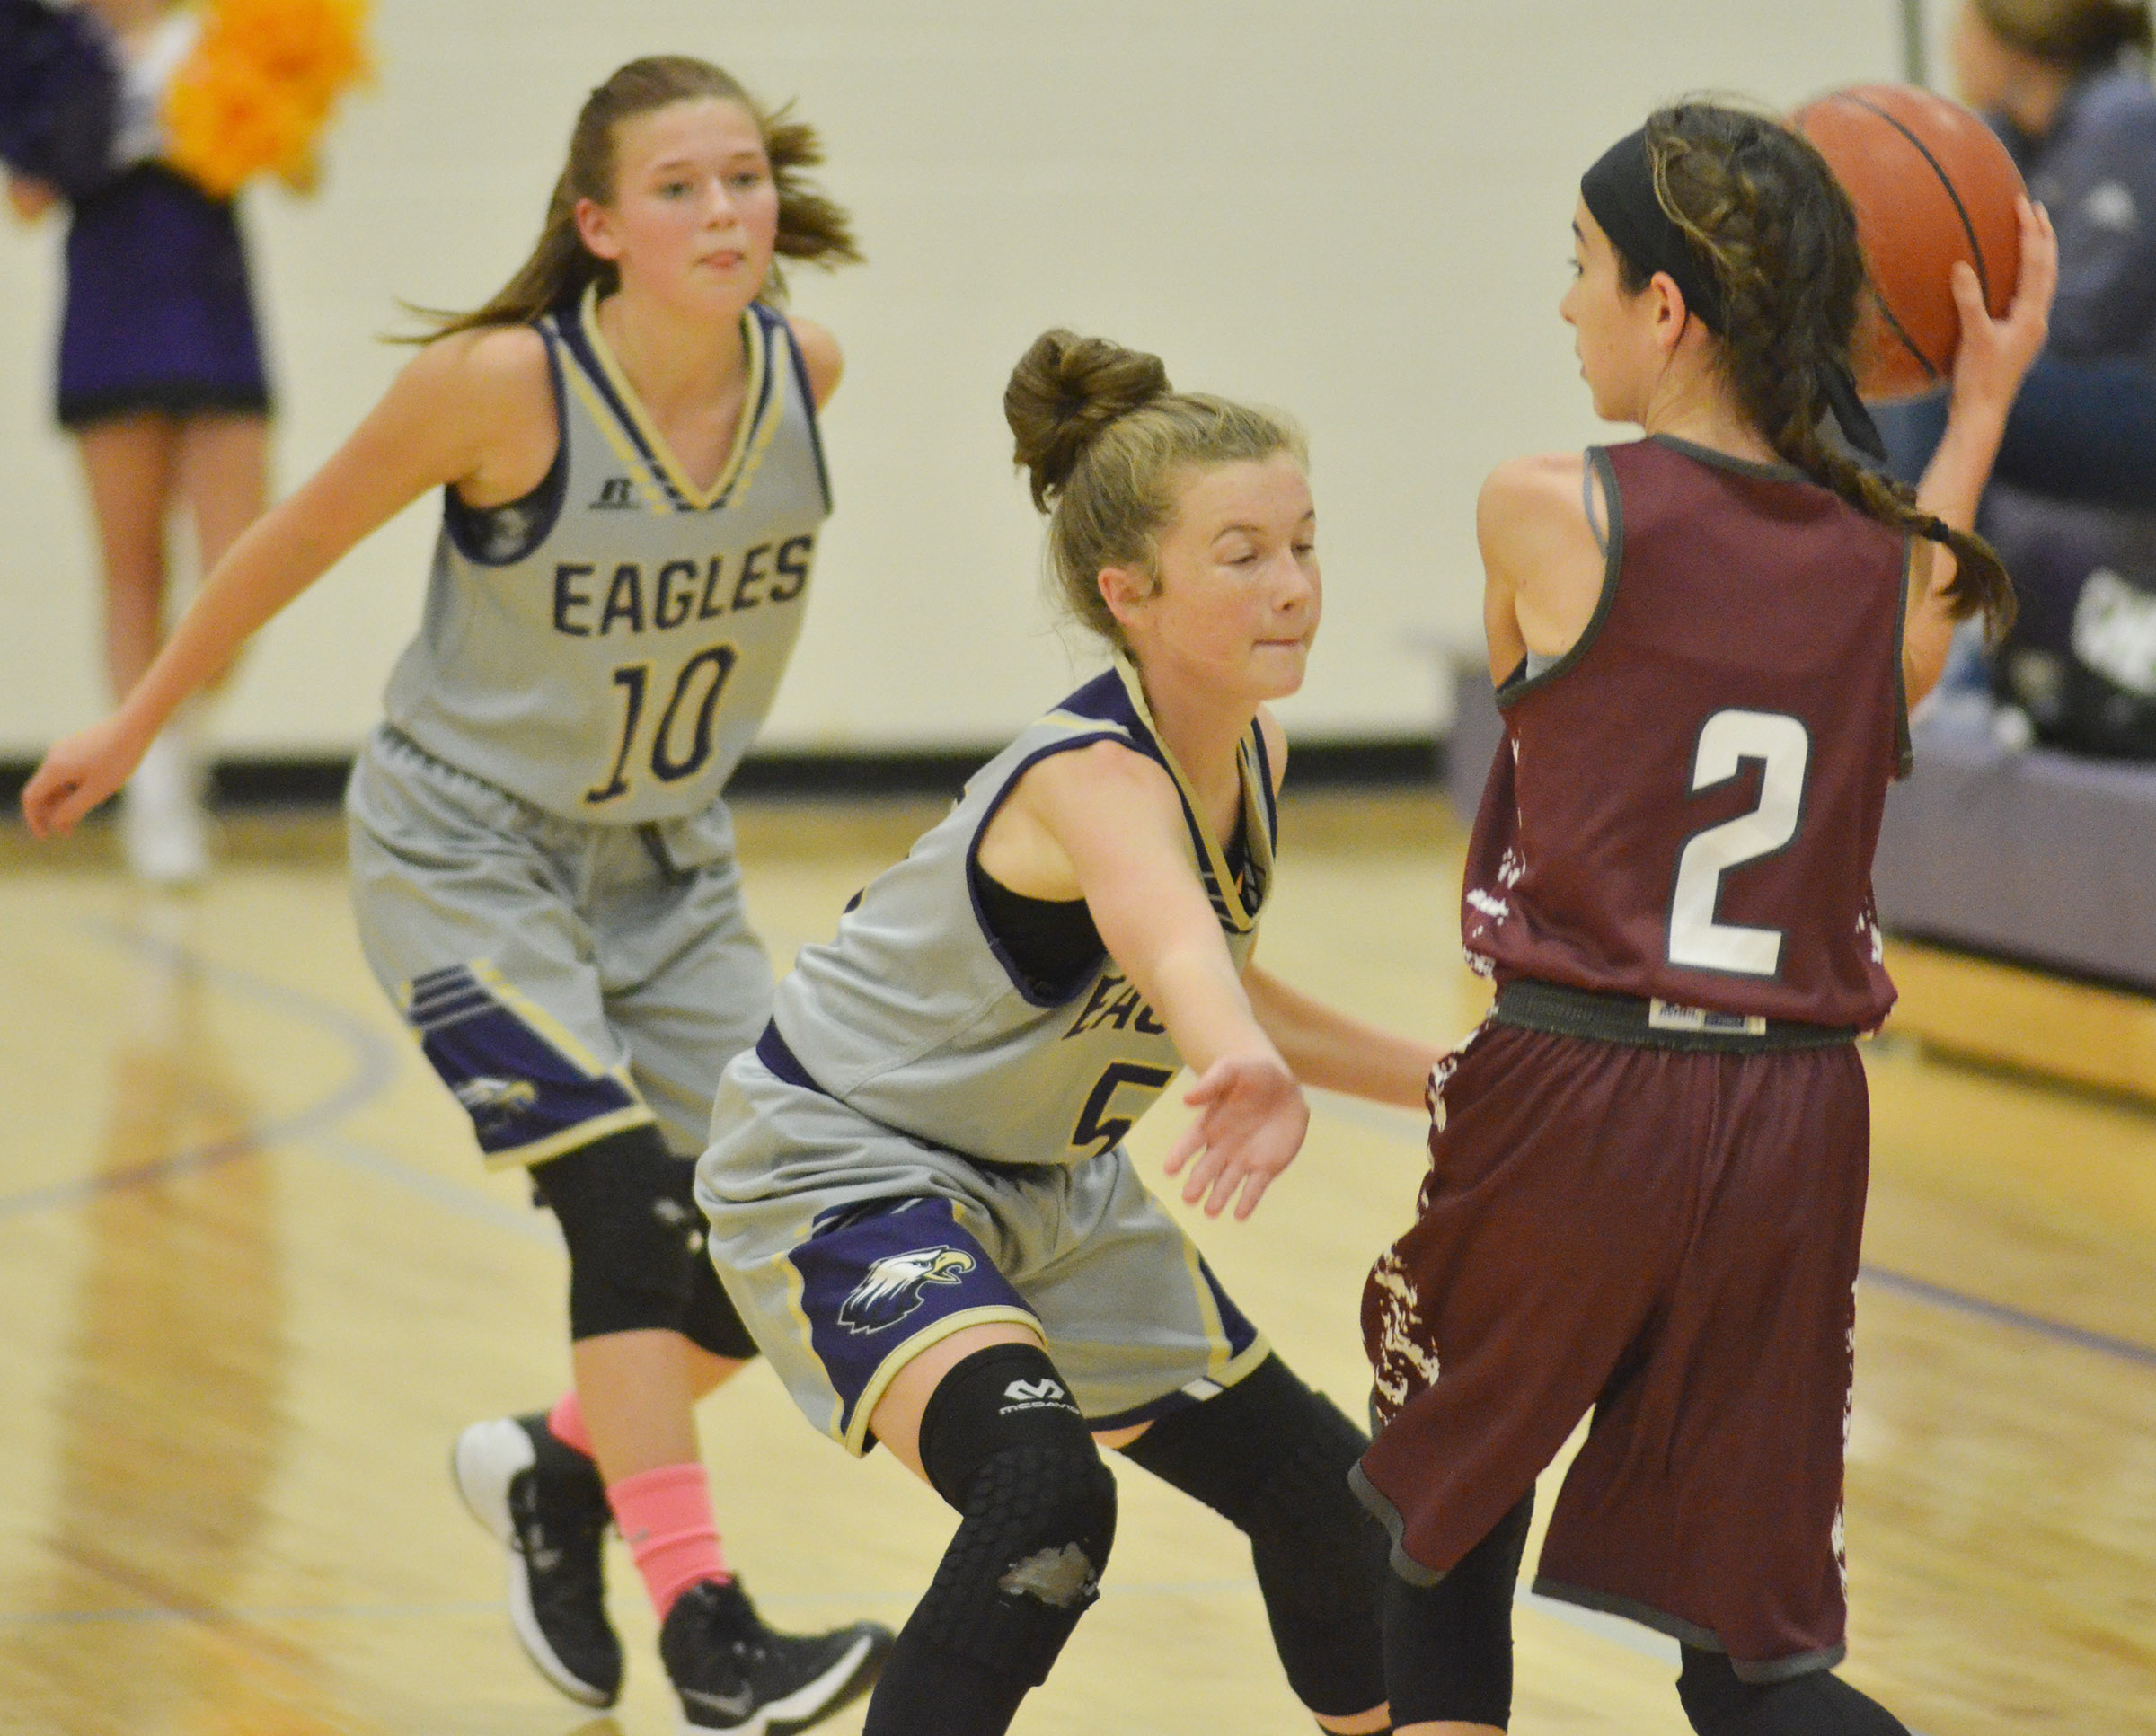 CMS seventh-graders BreAnna Humphress, at left, and Dakota Slone play defense.